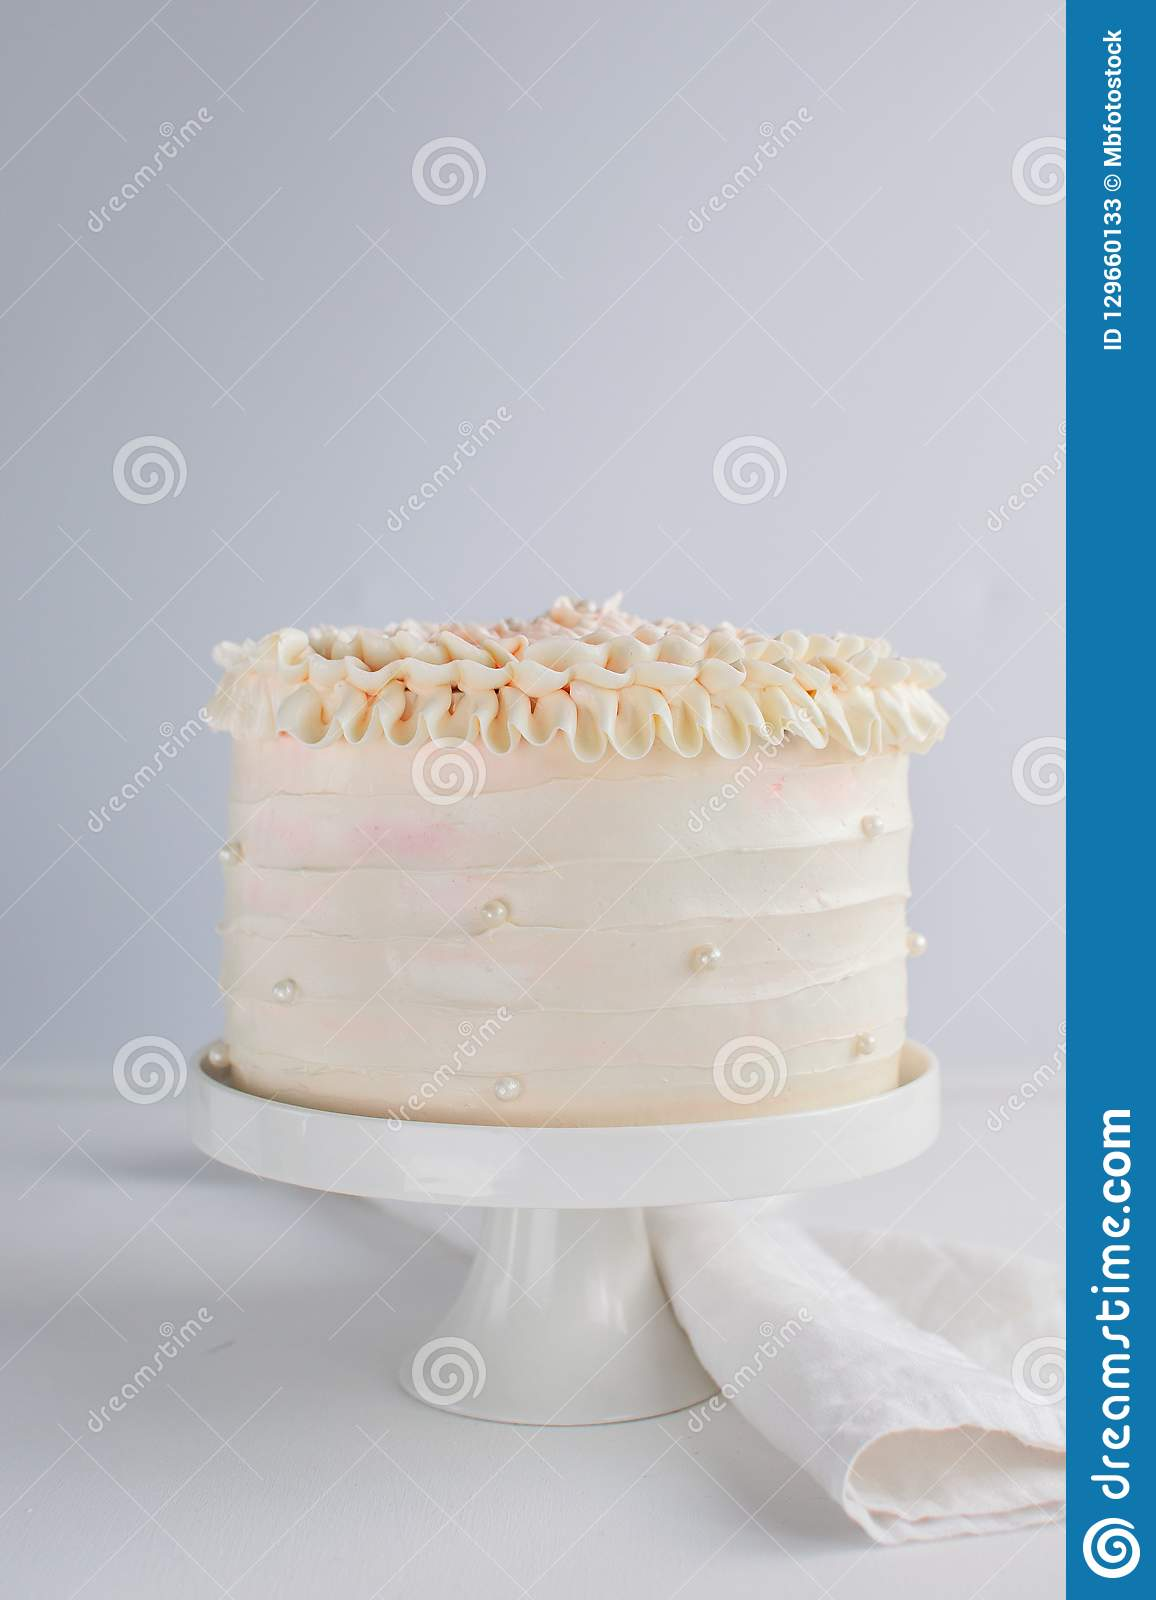 Tremendous Beautiful Birthday Cake Decorate With Edible Pearls On White Personalised Birthday Cards Fashionlily Jamesorg